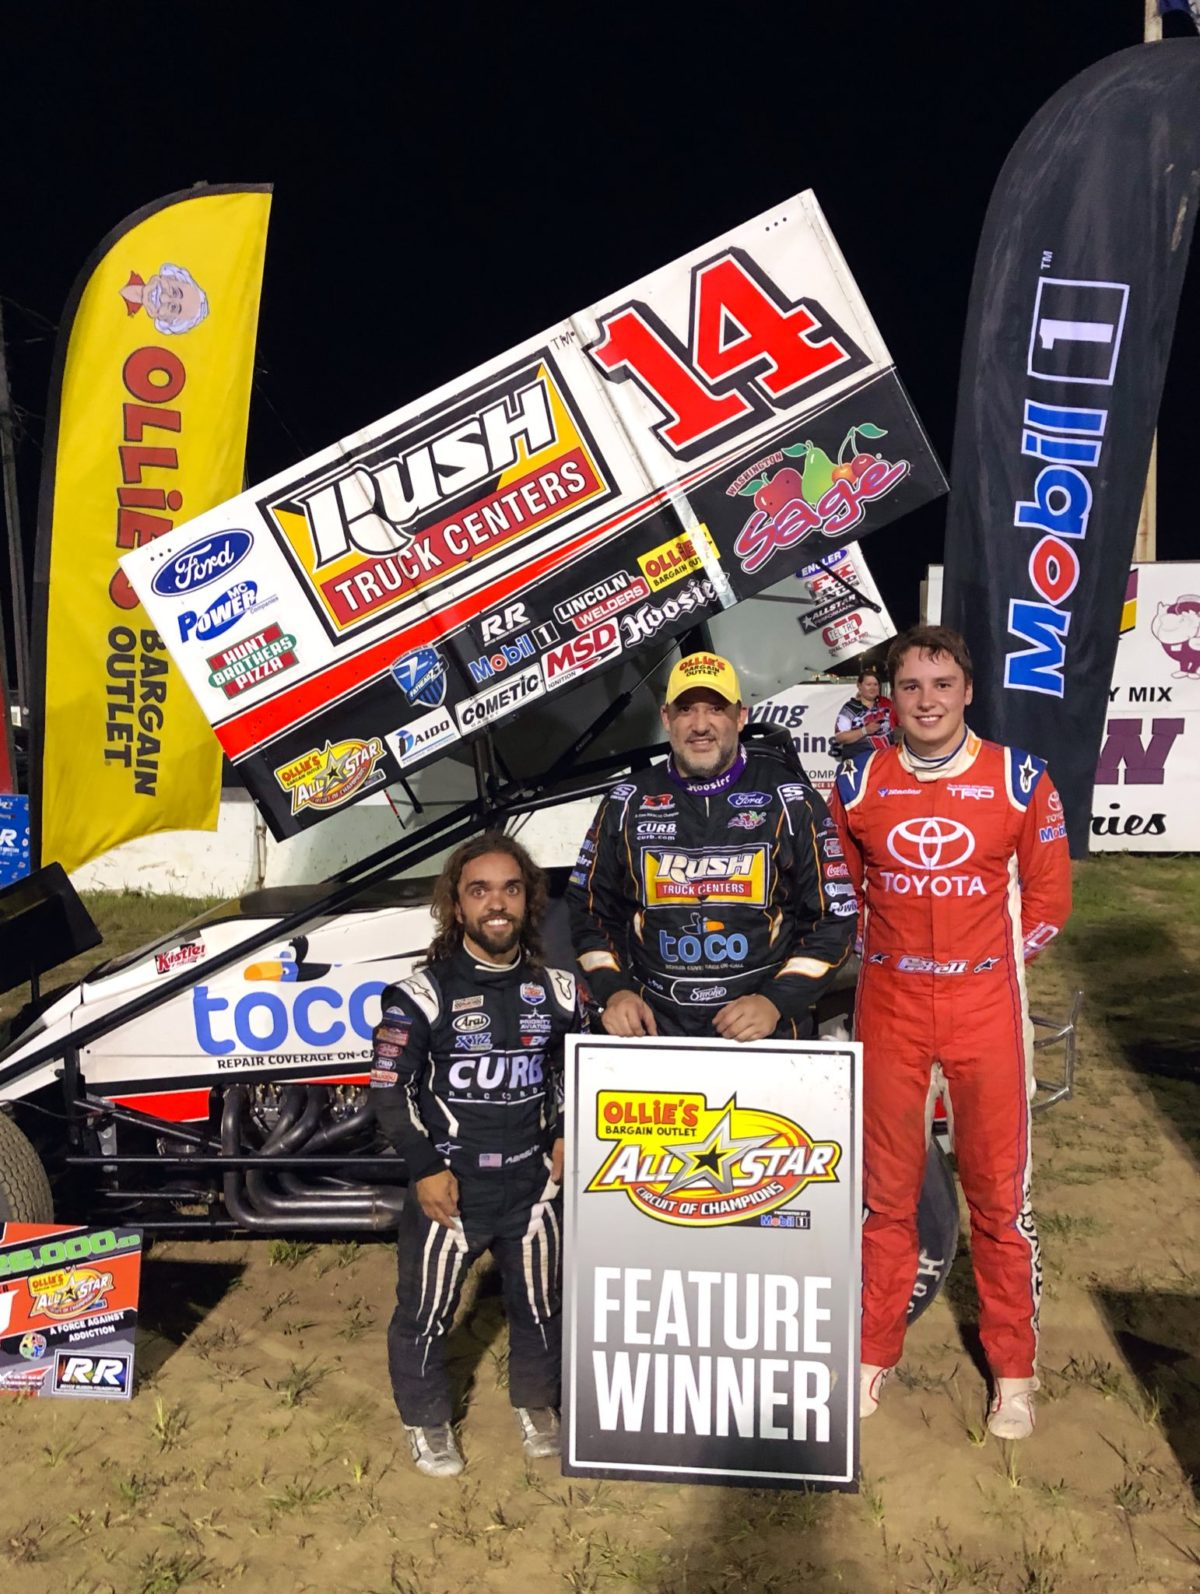 Tony Stewart caps five-race stint with Rayce Rudeen Foundation Race victory worth $26,000